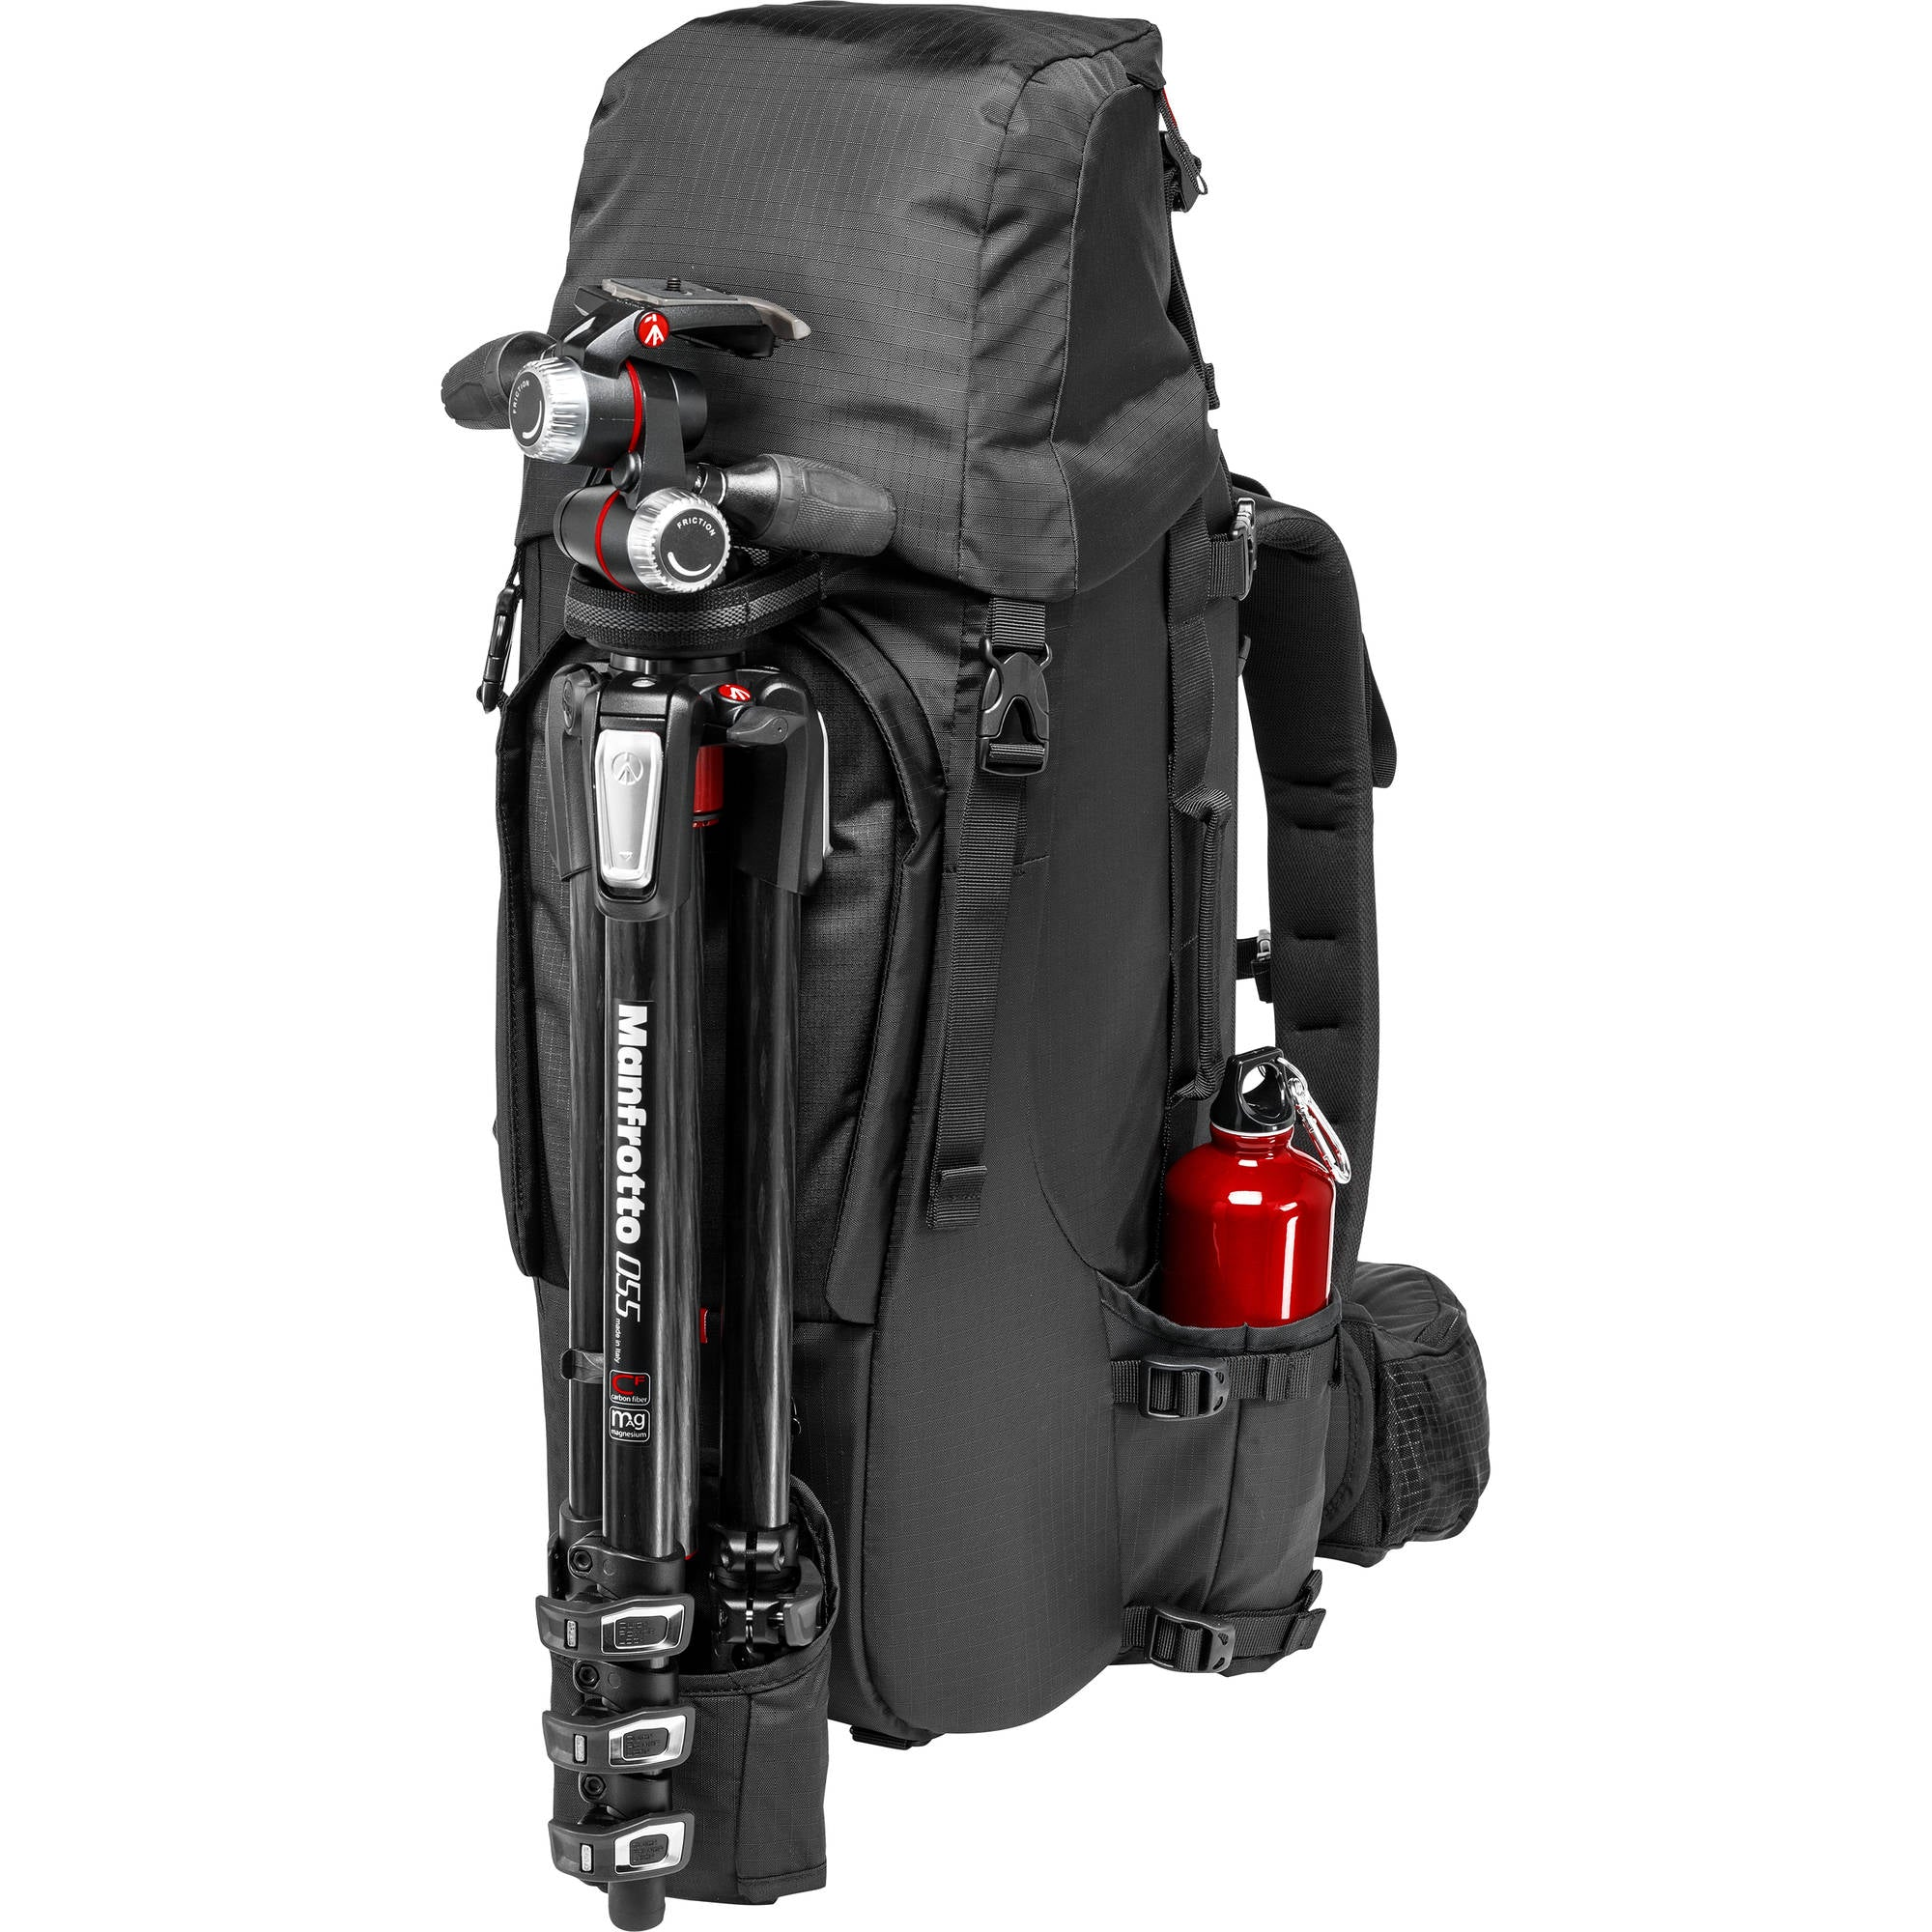 Manfrotto Pro Light Camera Backpack TLB-600 for DSLR with 600mm Lens (Black)